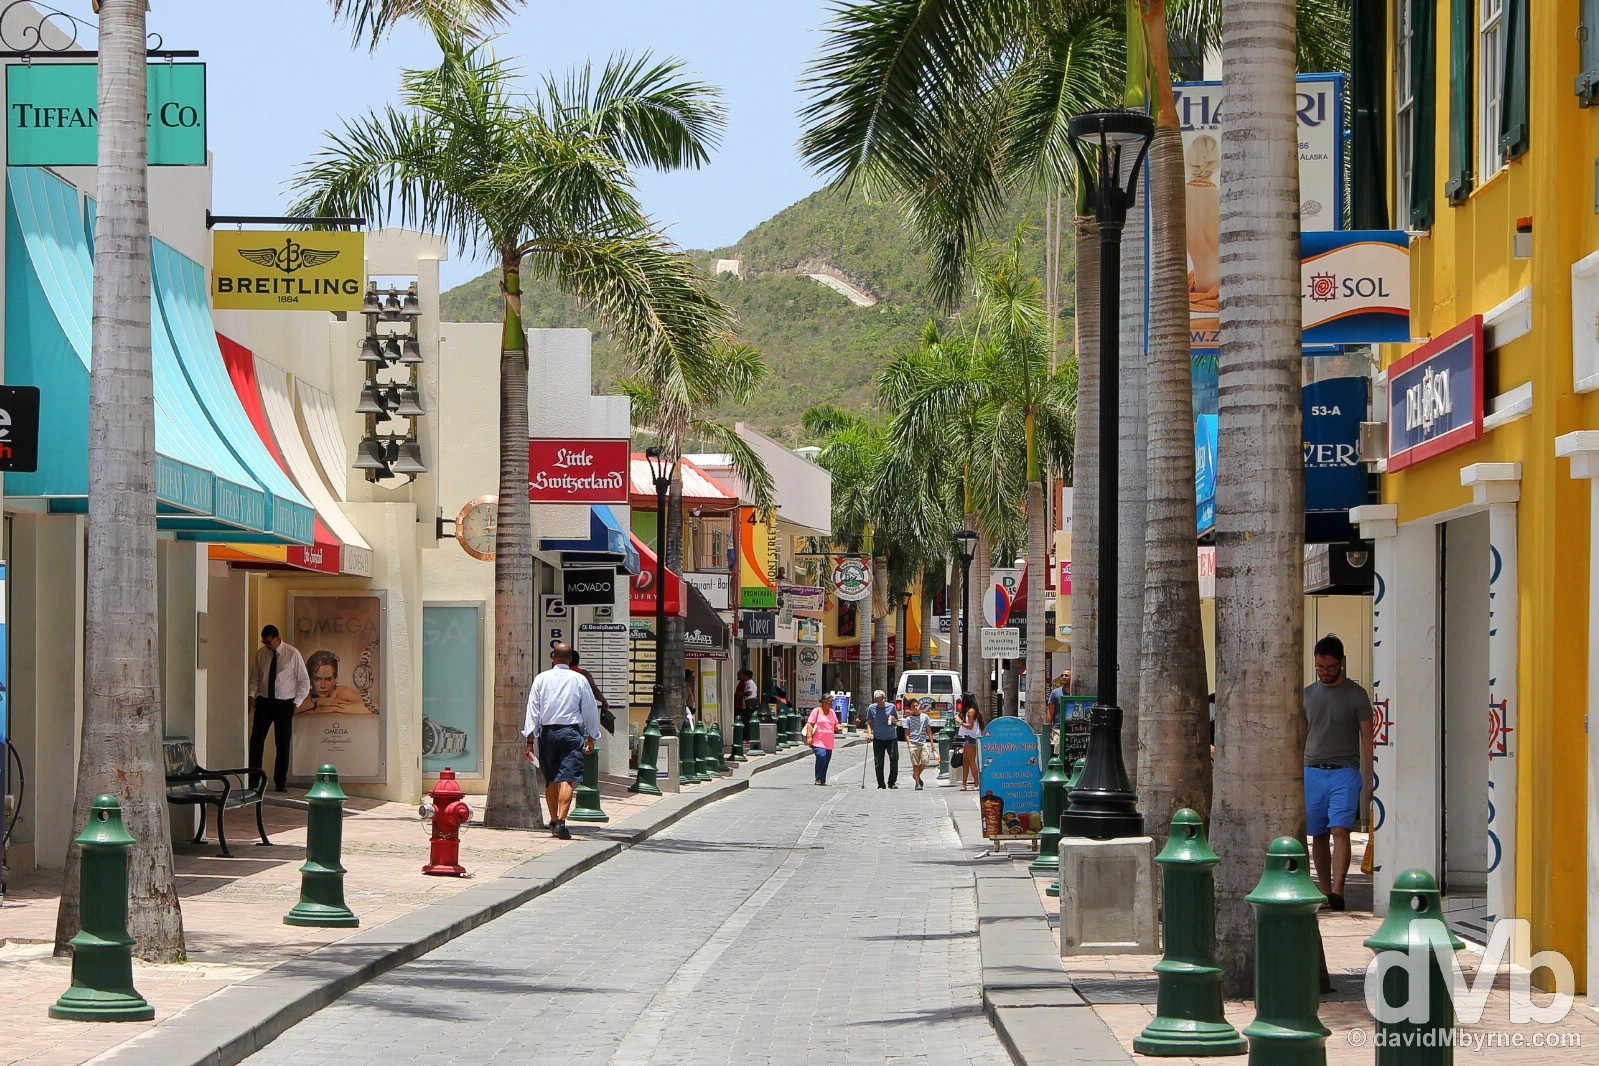 Shopping in Philipsburg, Sint Maarten, Lesser Antilles. June 8, 2015.